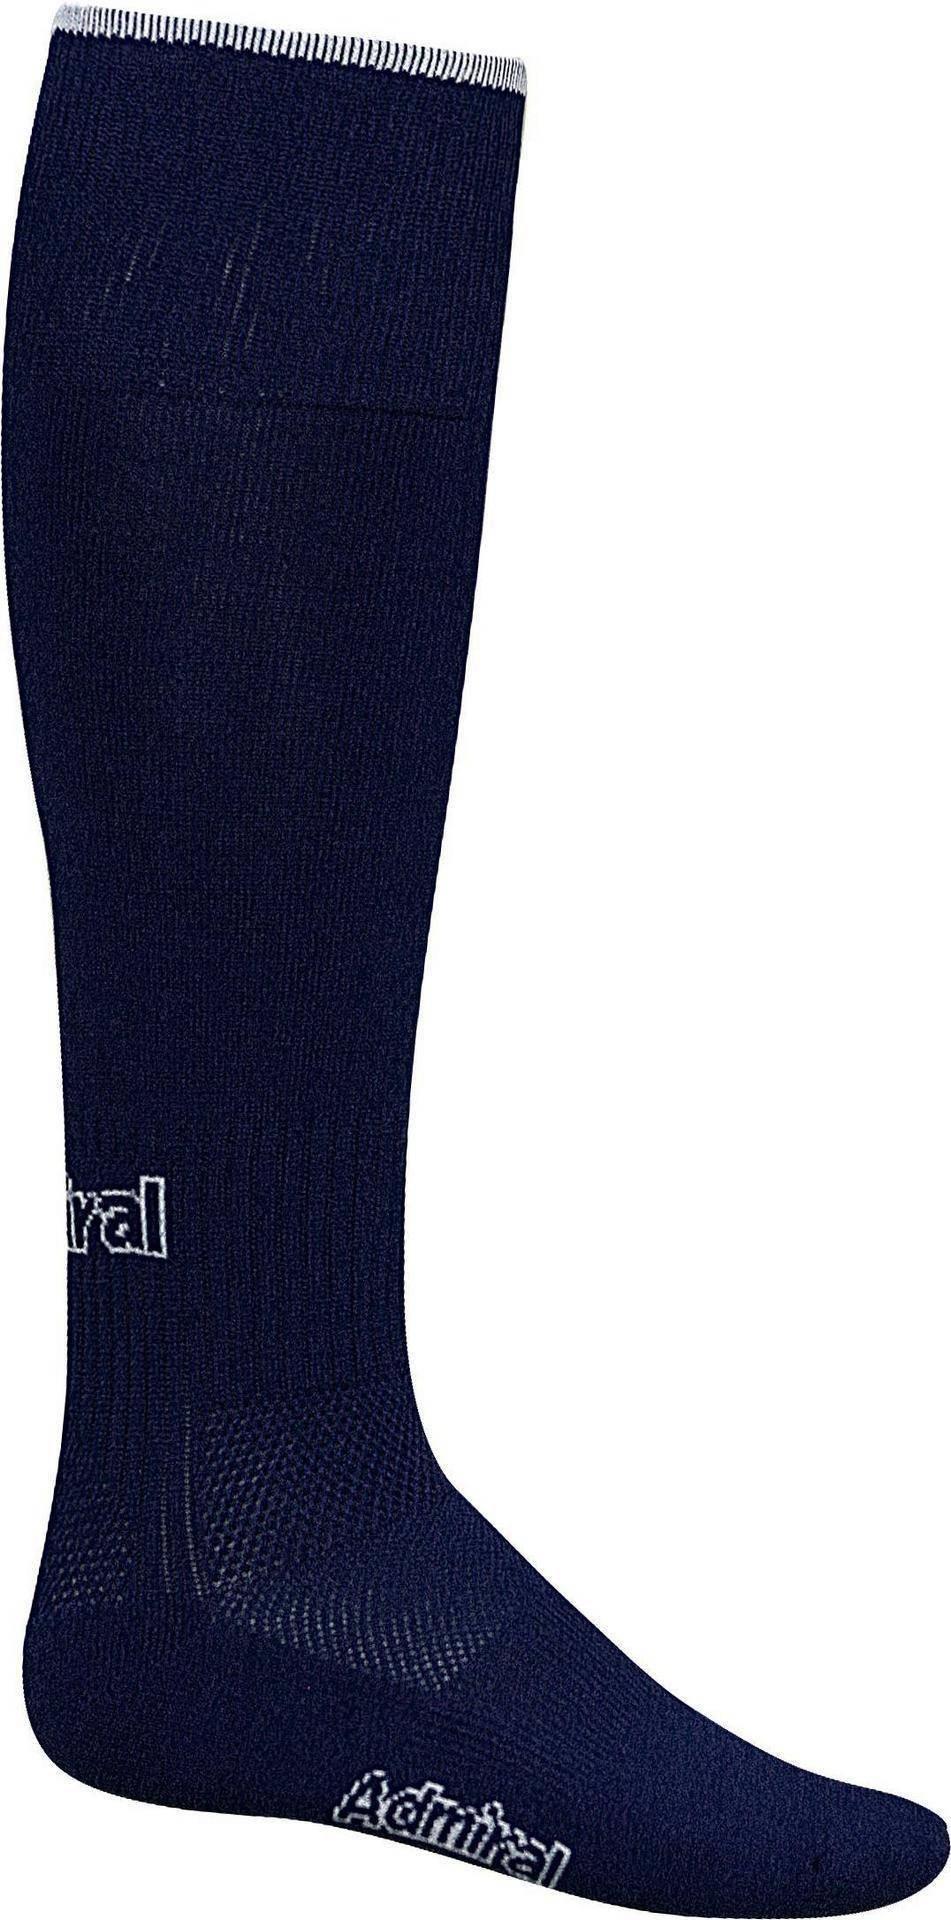 Admiral Professional Soccer Socks, Navy/White, Youth by Admiral